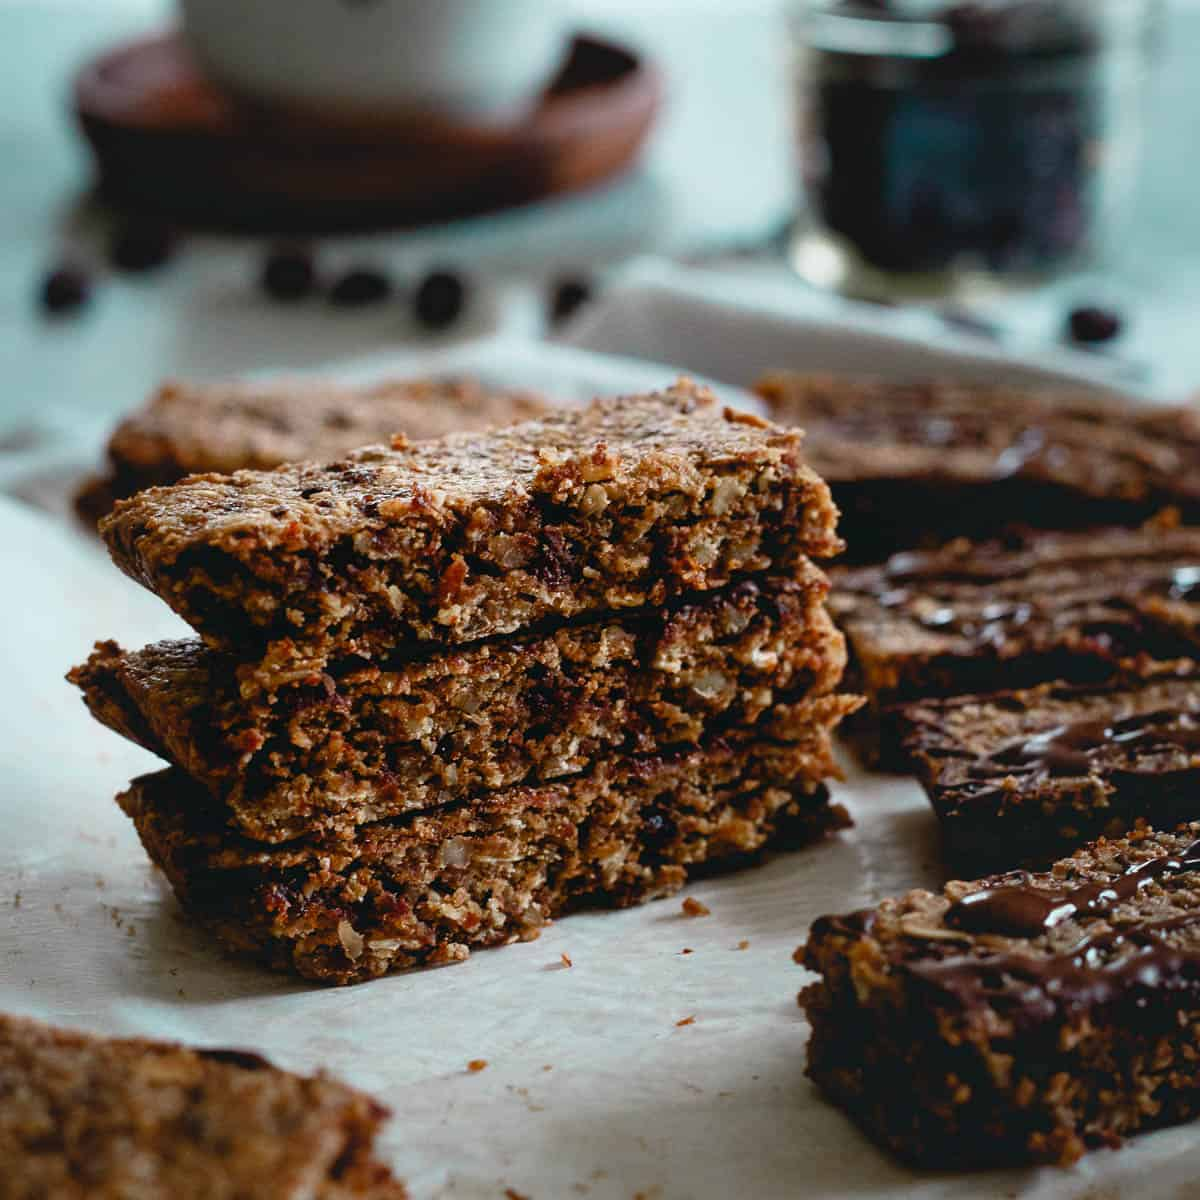 Grab a chewy tart cherry oat bar to fuel up before or after your workout for a tasty and healthy snack.